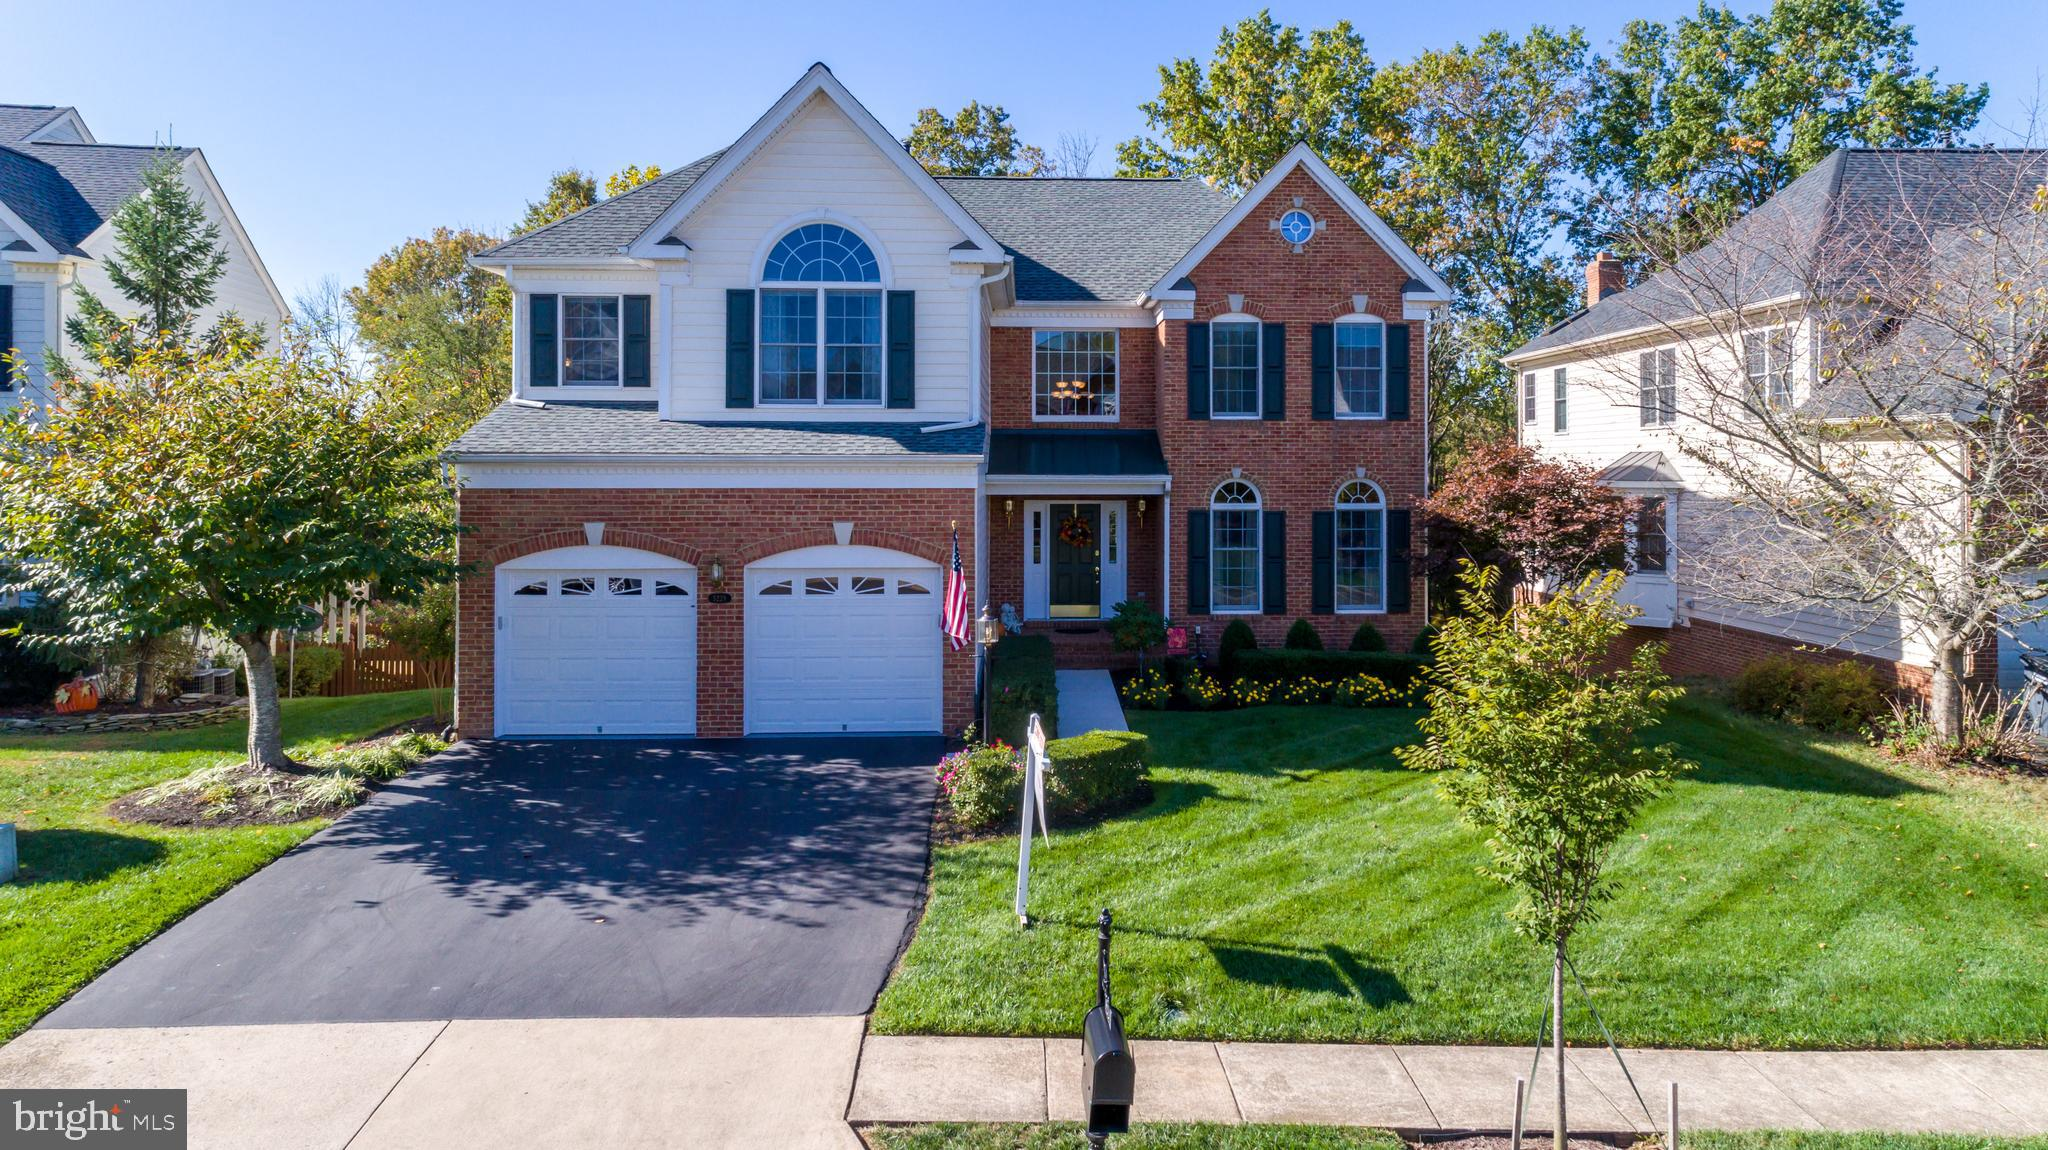 Immaculate Richmond Model by Toll Bros*Located on a cul de sac backing to trees*Custom Upgrades Thro